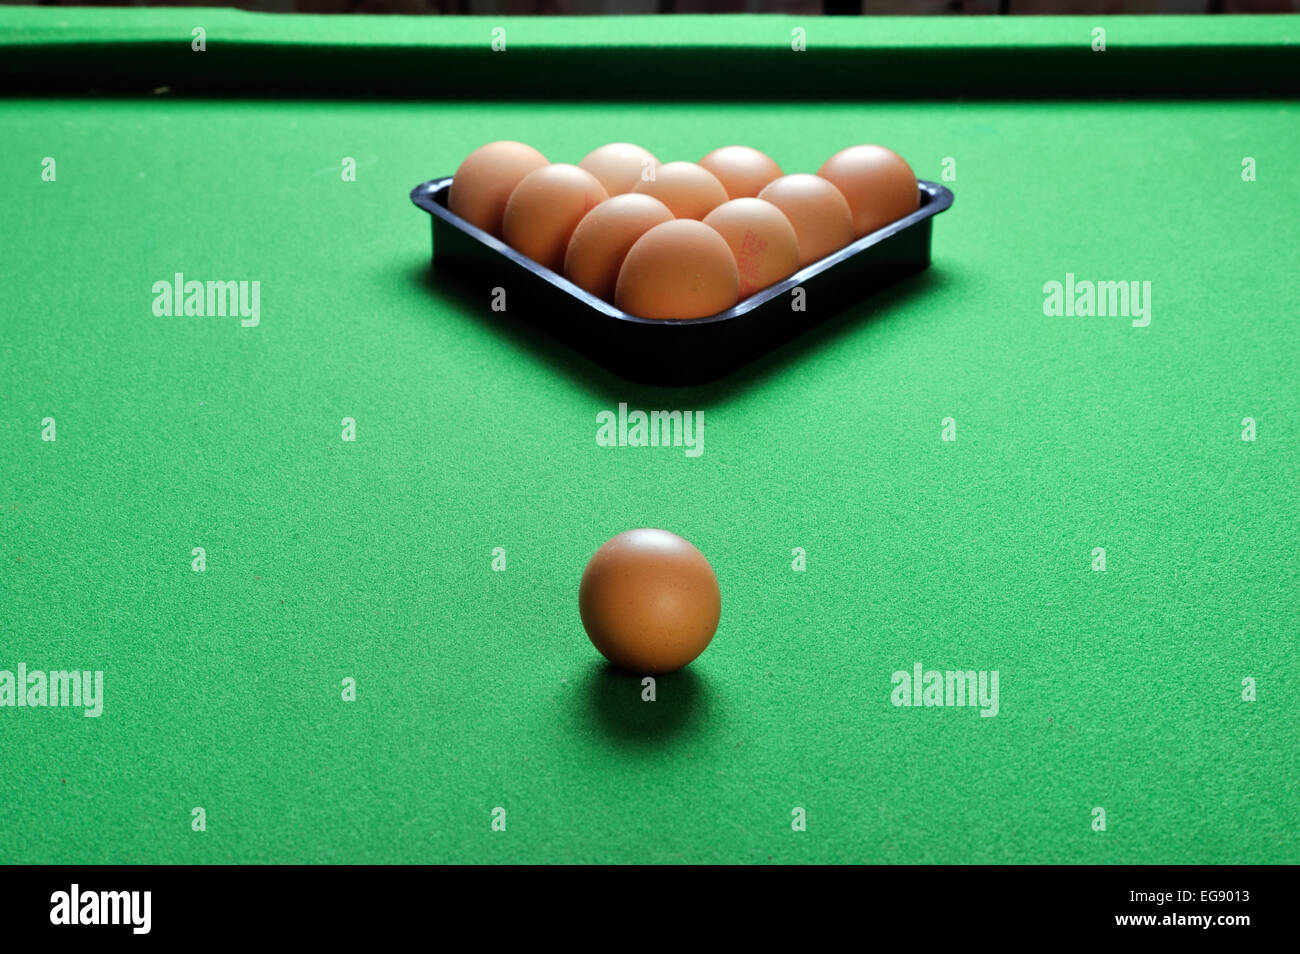 Eggs on snooker table - Stock Image